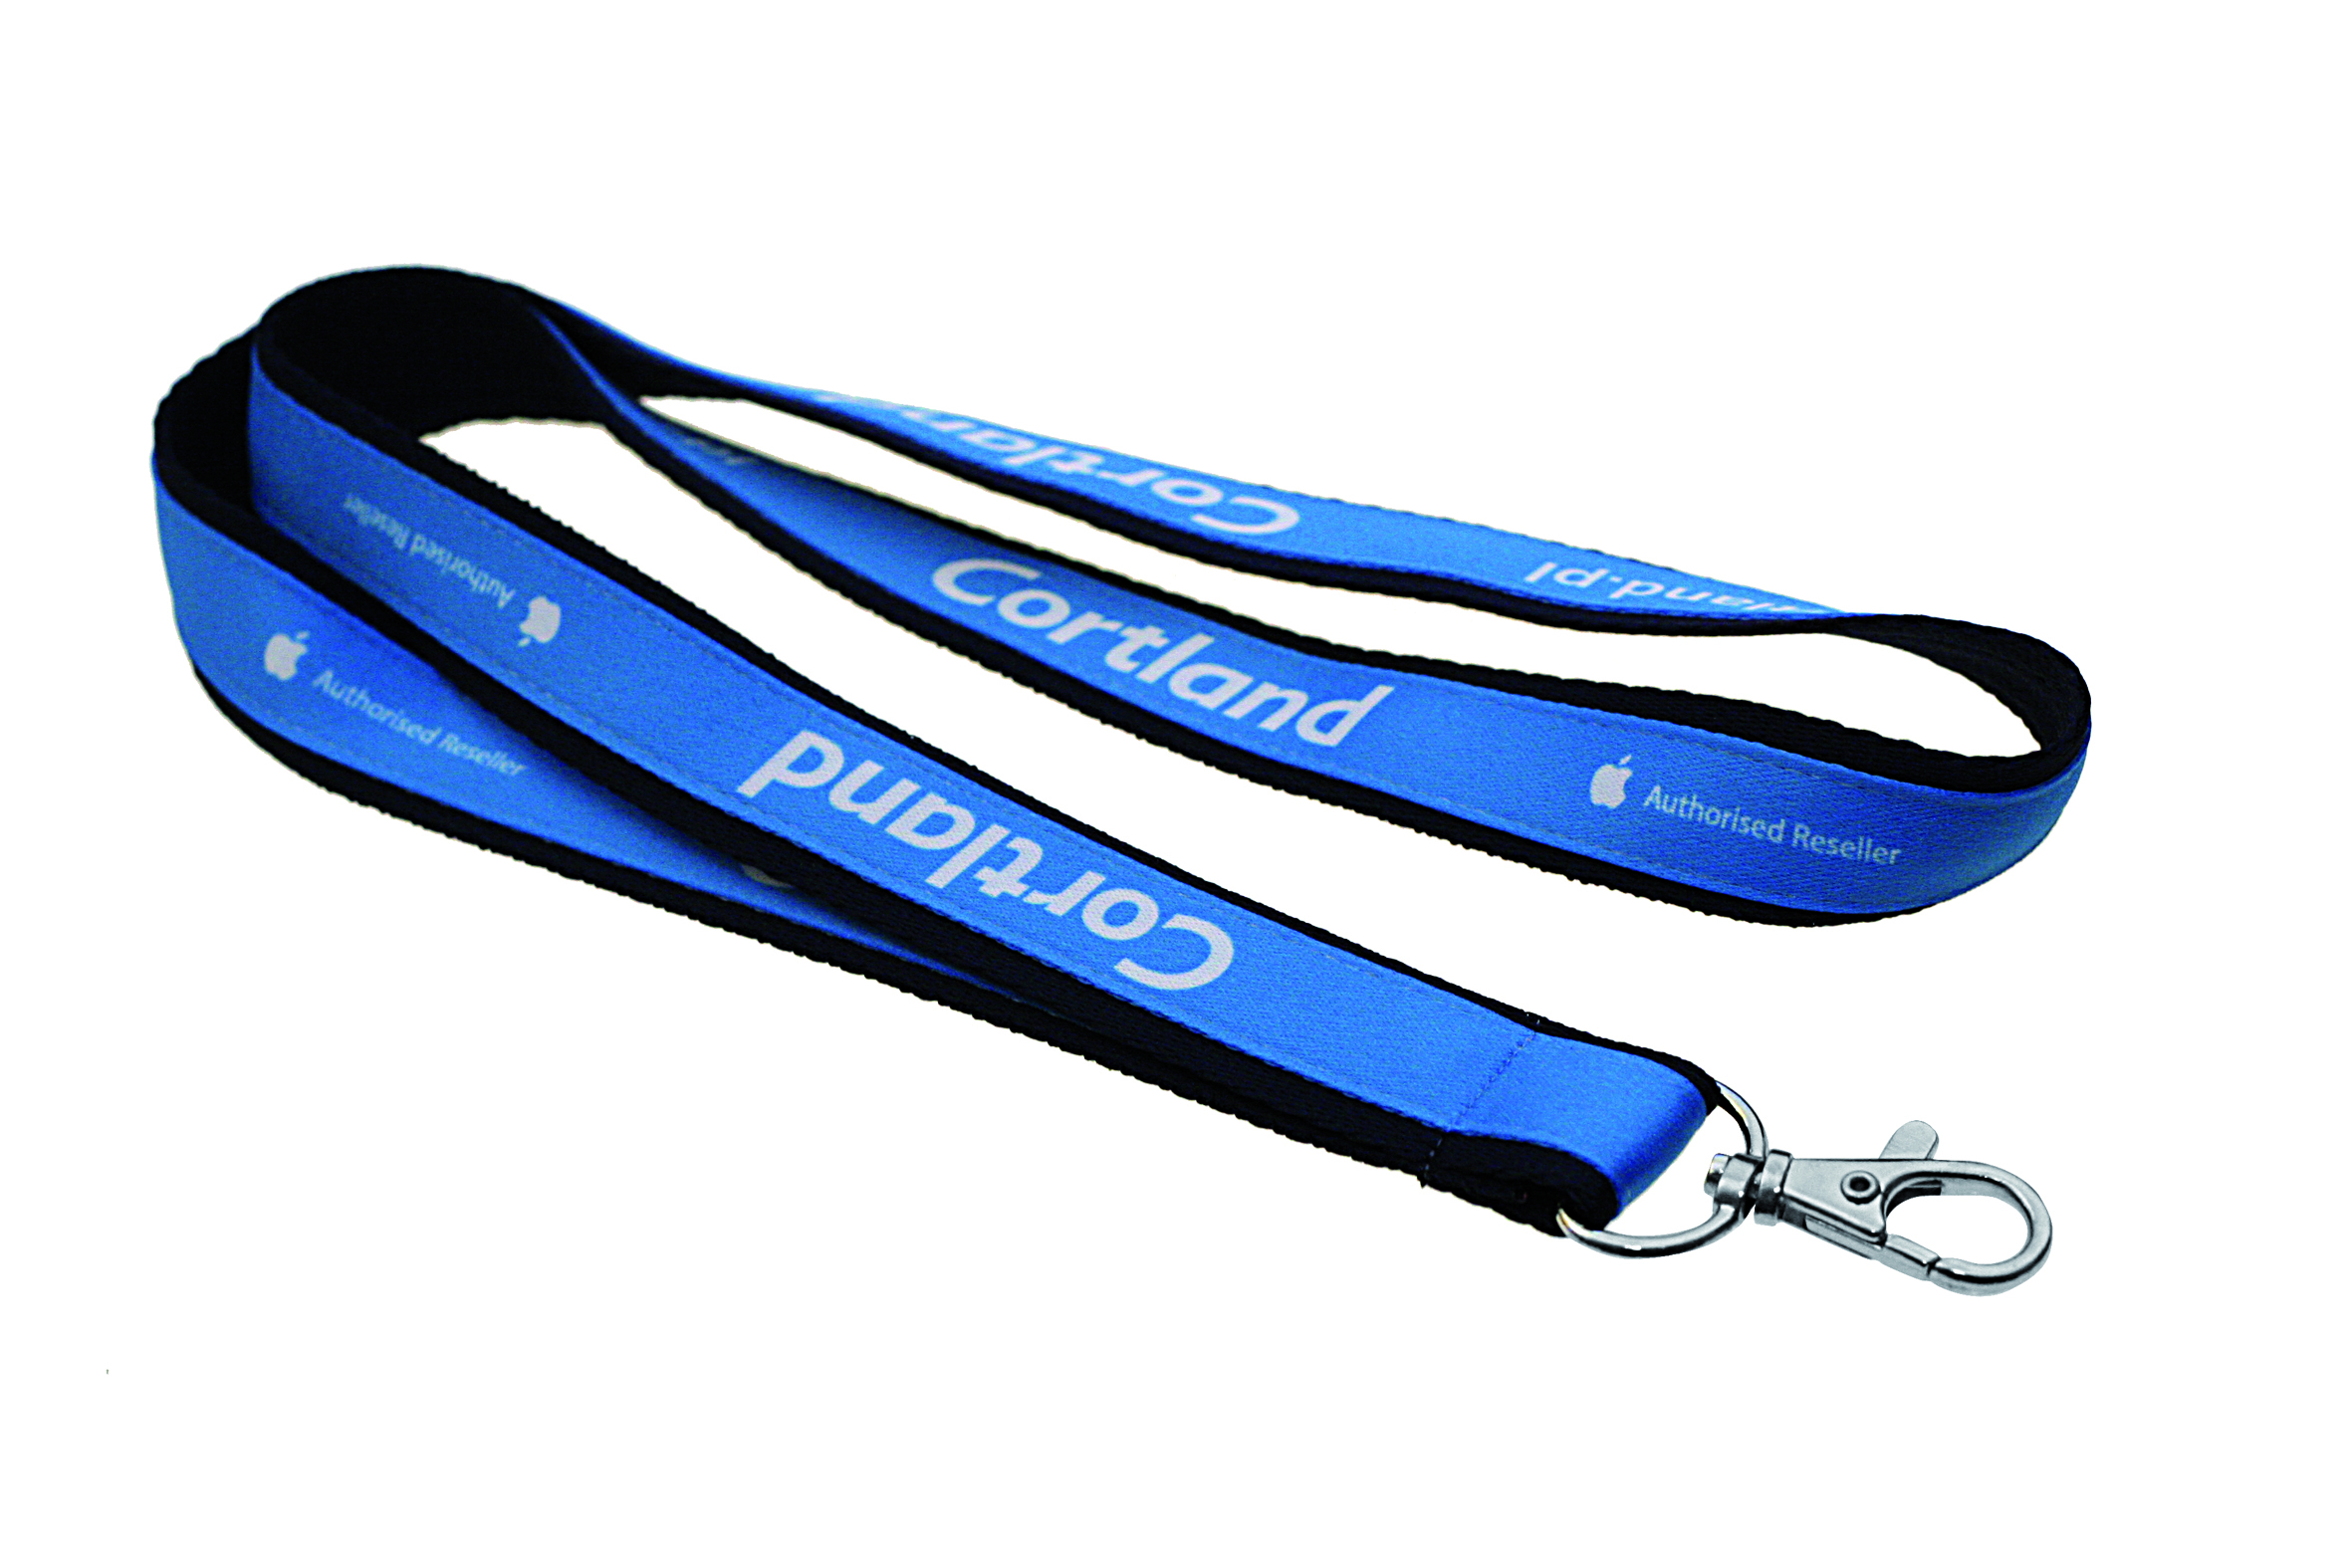 Double layered lanyards